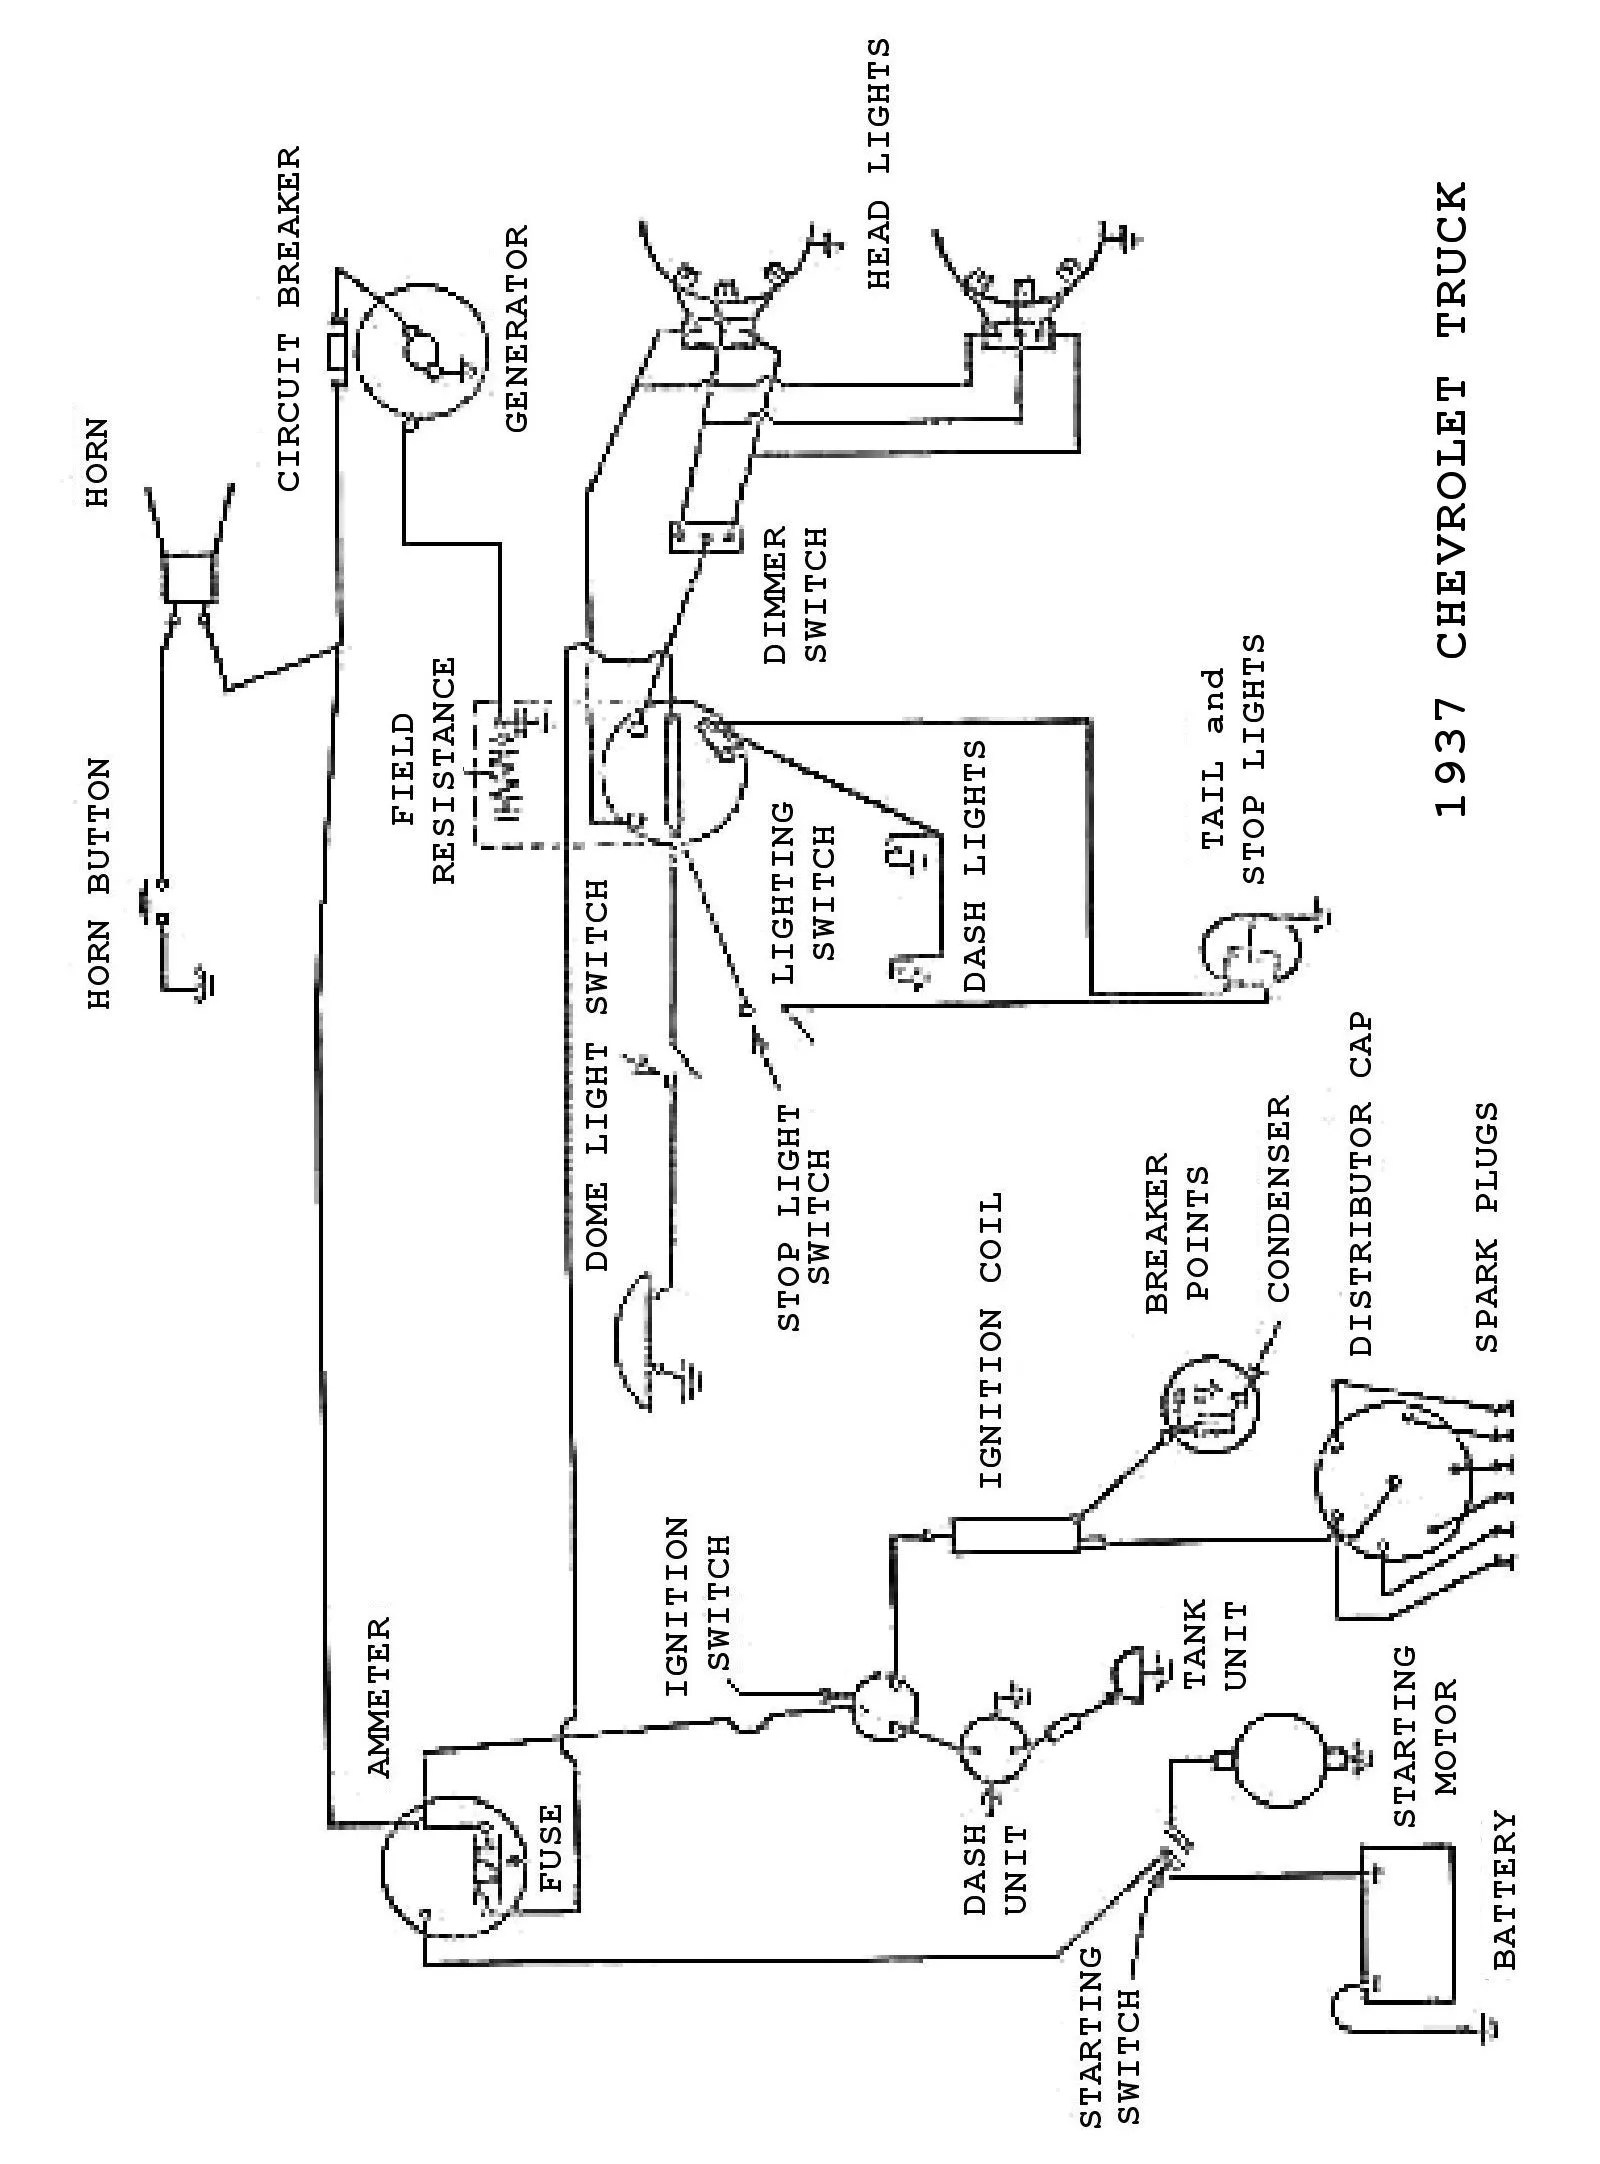 hight resolution of 1950 chevy generator wiring diagram wiring diagram fascinating wiring diagram for 1954 ford truck also with 1950 chevy truck wiring